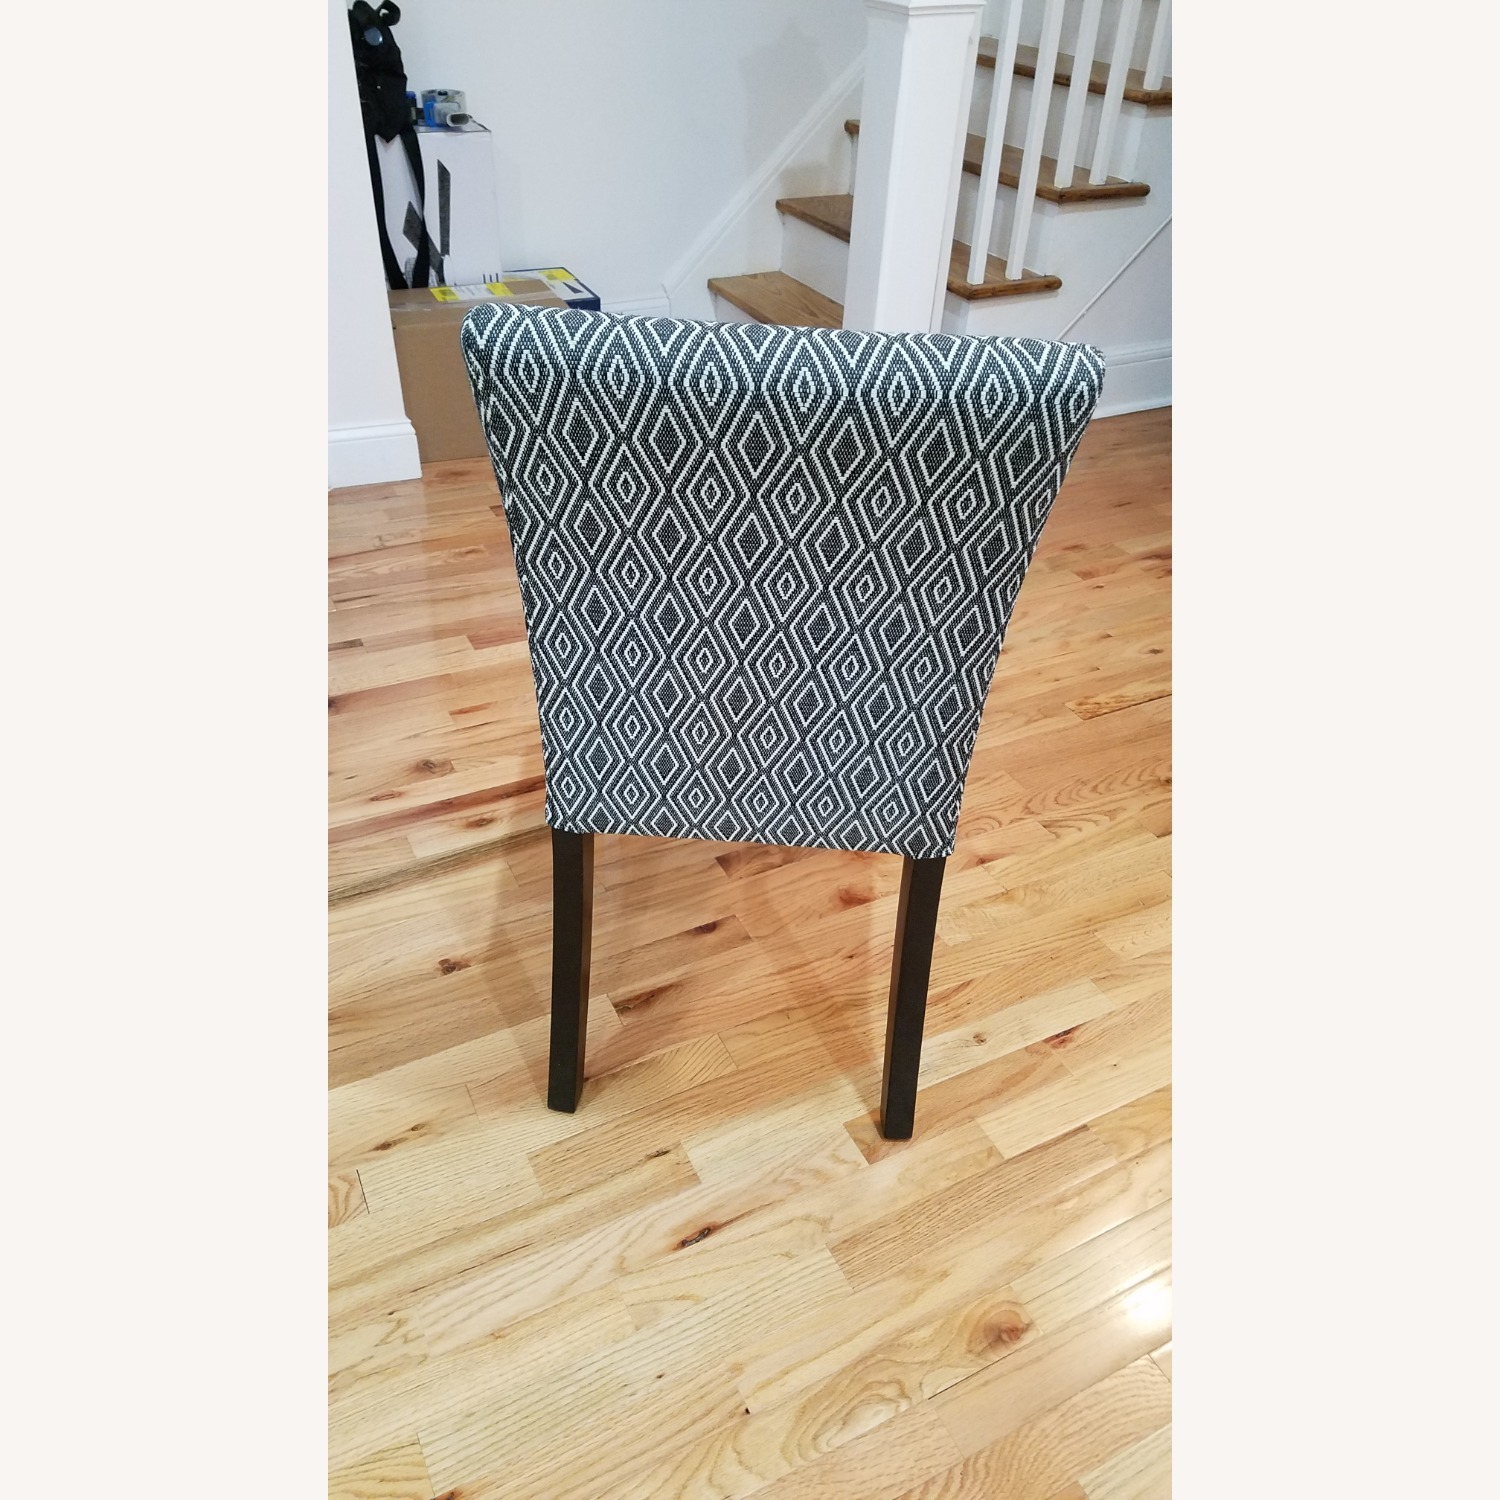 Crate & Barrel Dining Chairs - image-2